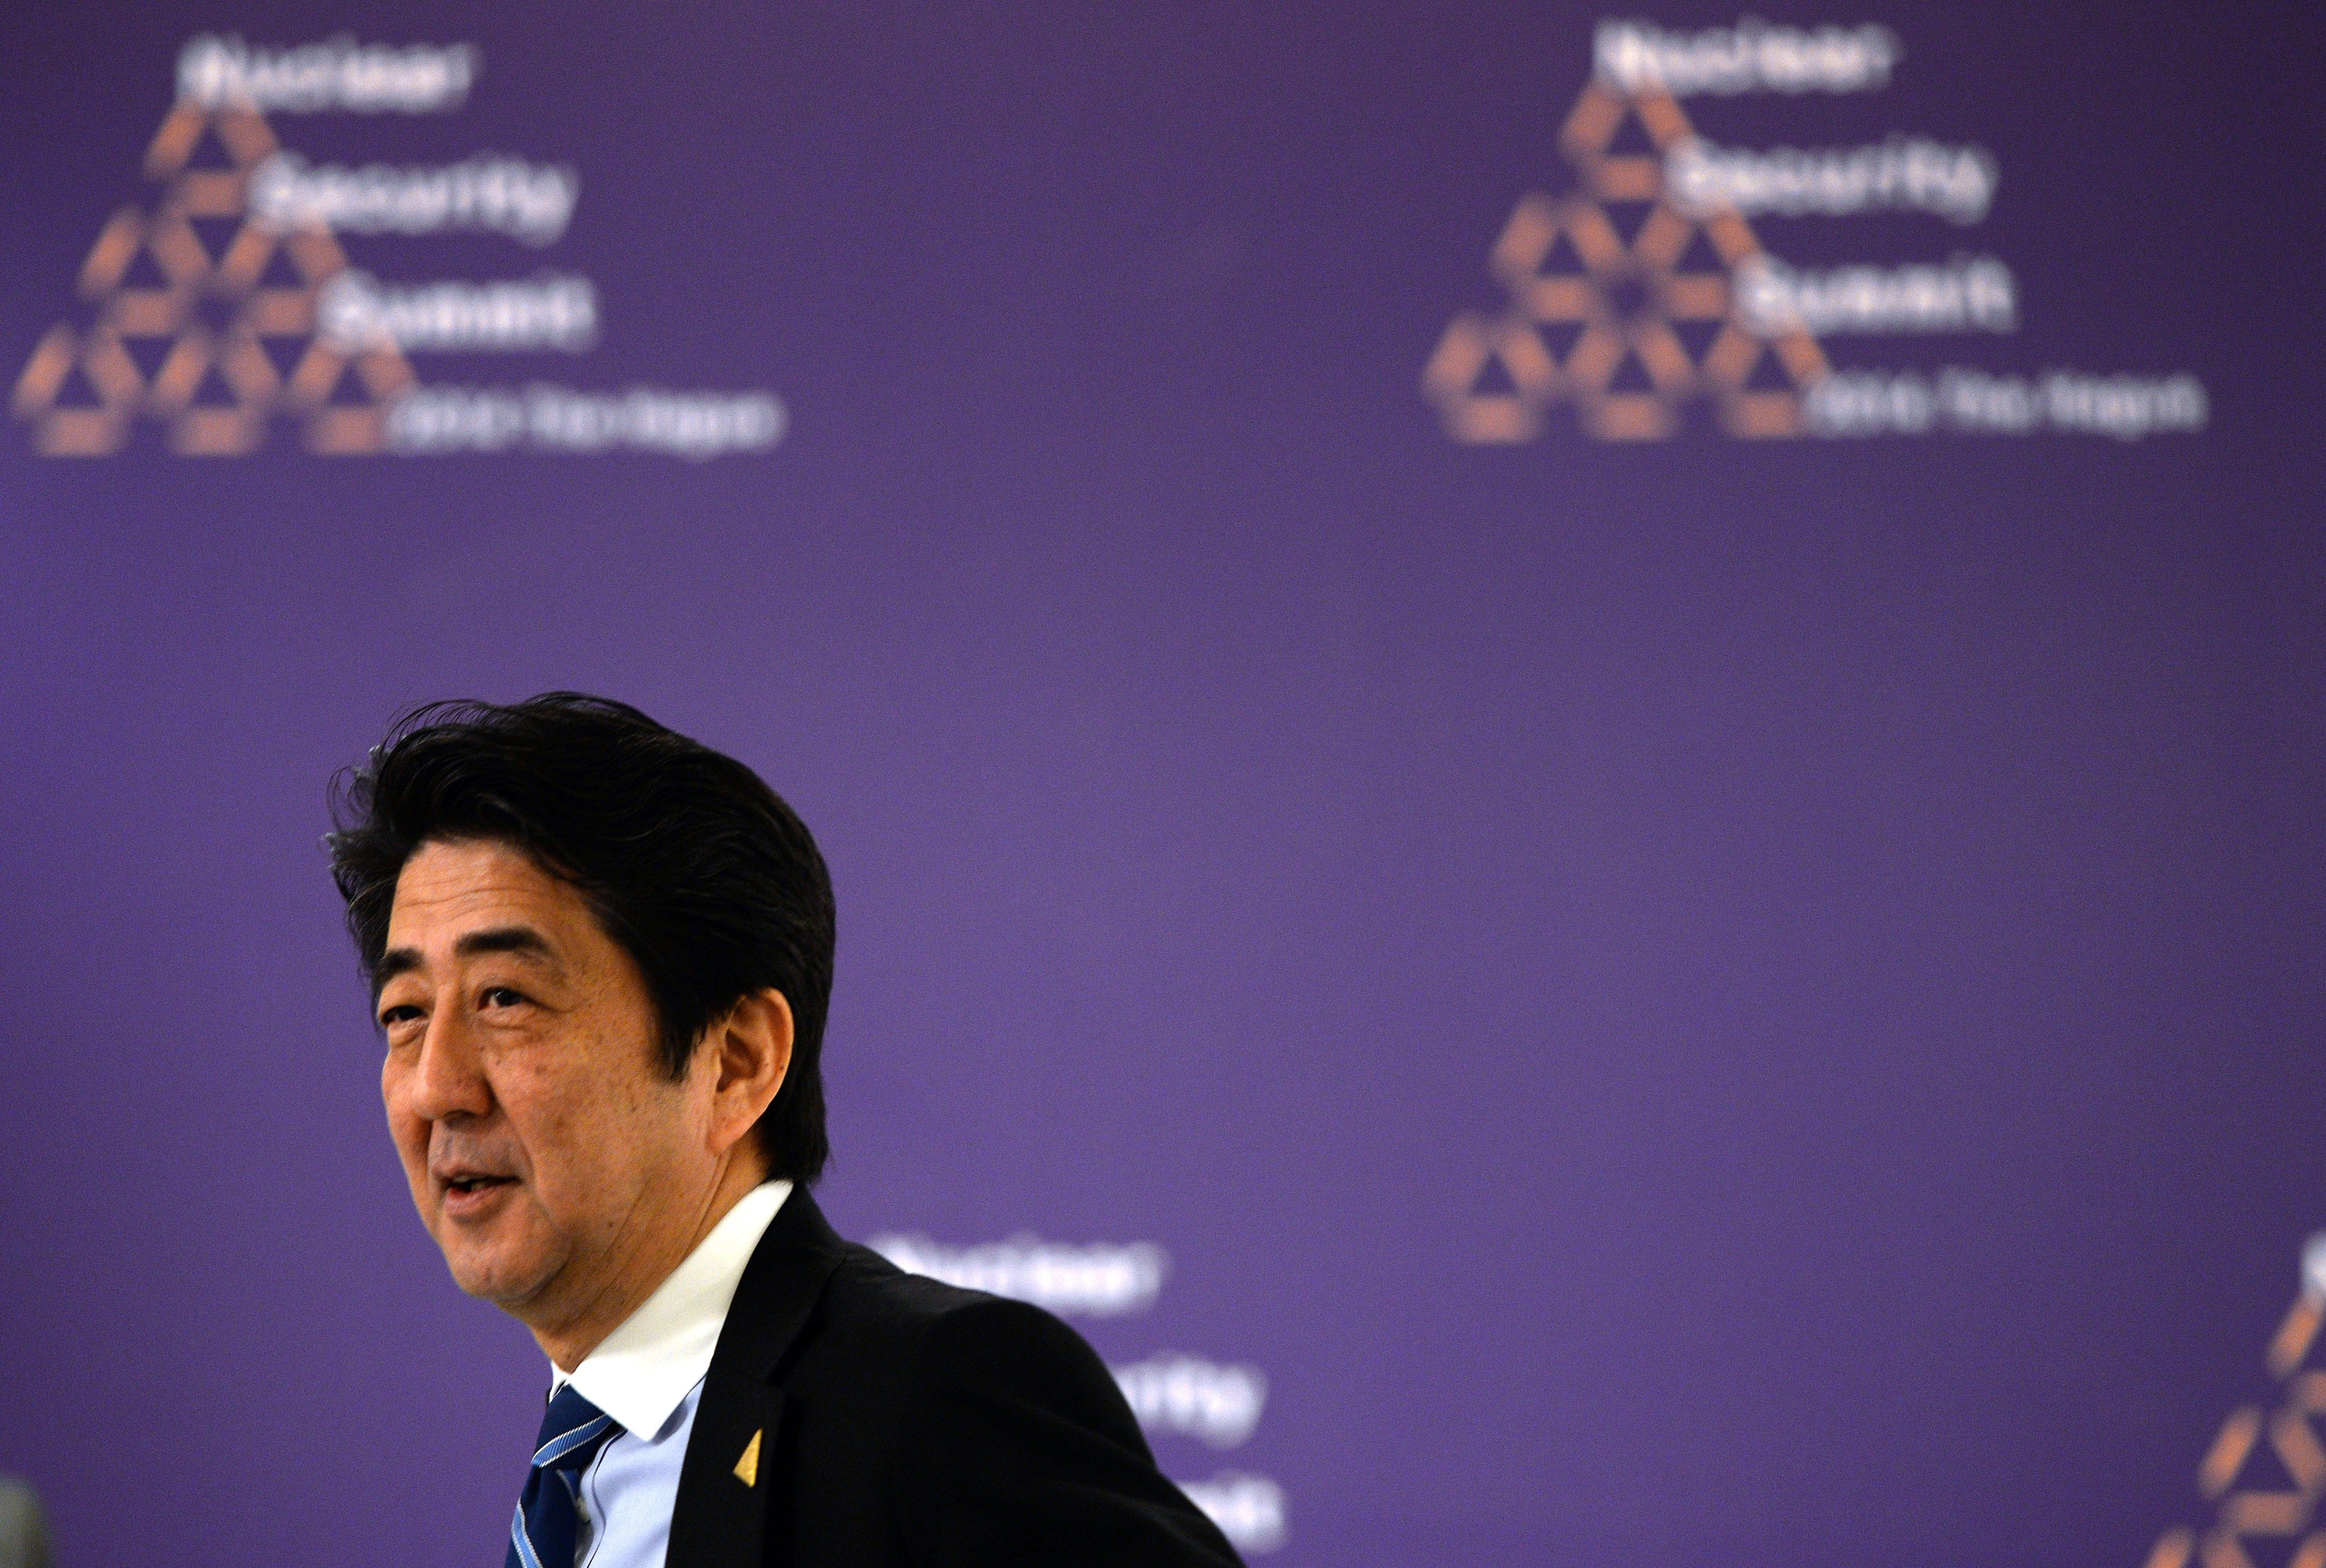 Japanese Prime Minister Shinzo Abe attends a bilateral meeting with the German chancellor on the sidelines of the Nuclear Security Summit (NSS) in The Hague on March 25, 2014. The world must construct a system to fight nuclear terror with the world's atomic watchdog playing a central role, a draft of the Nuclear Security Summit's final statement says.